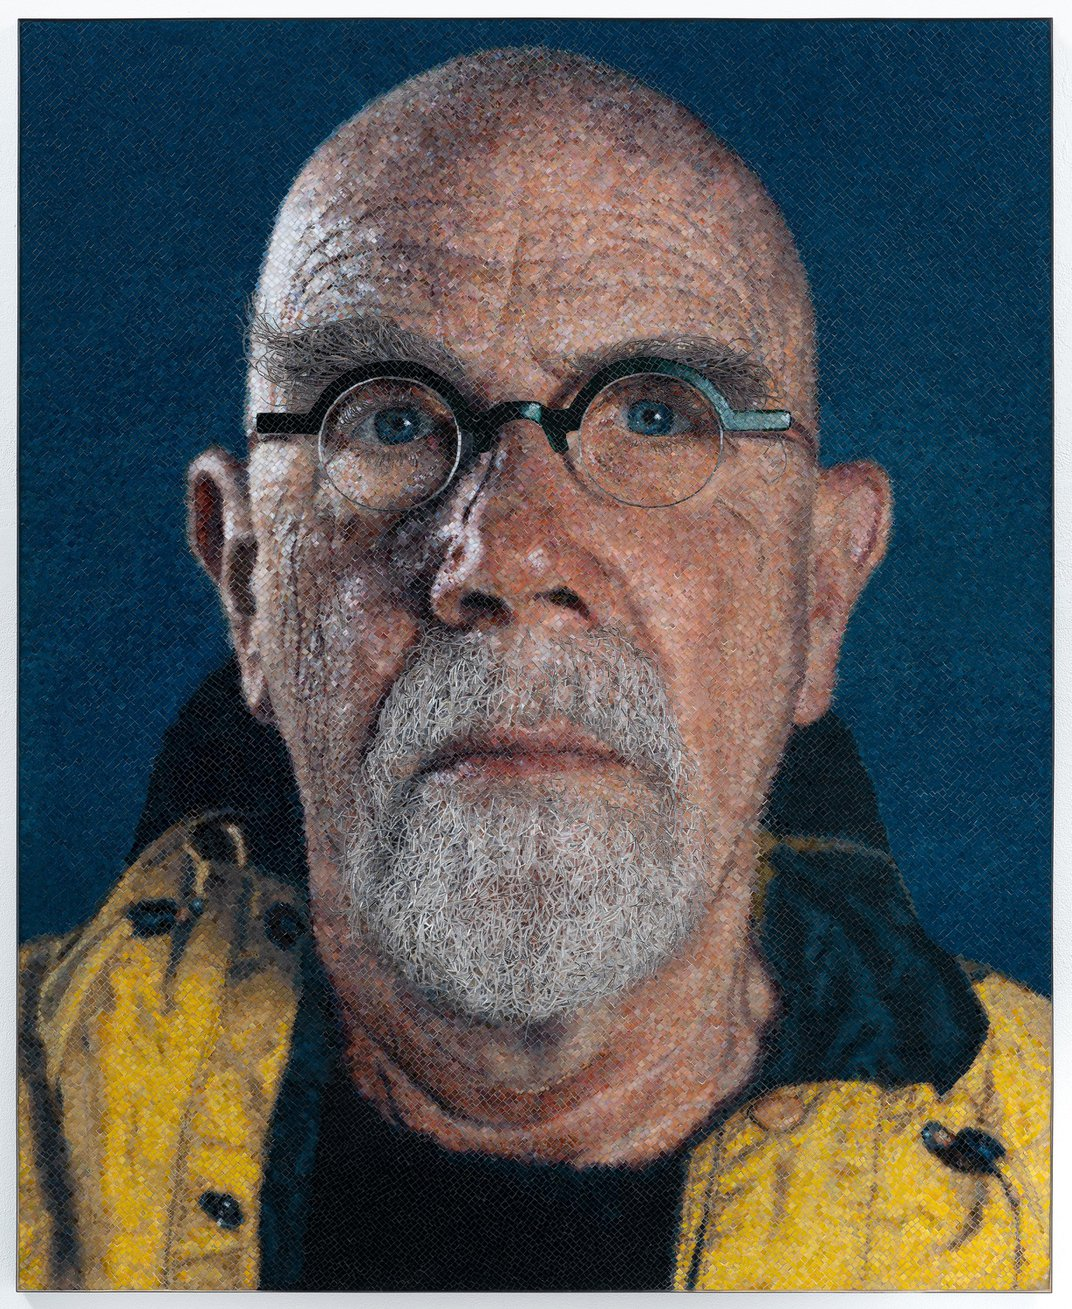 Chuck Close, Artist Whose Photorealist Portraits Captivated America, Dies at 81